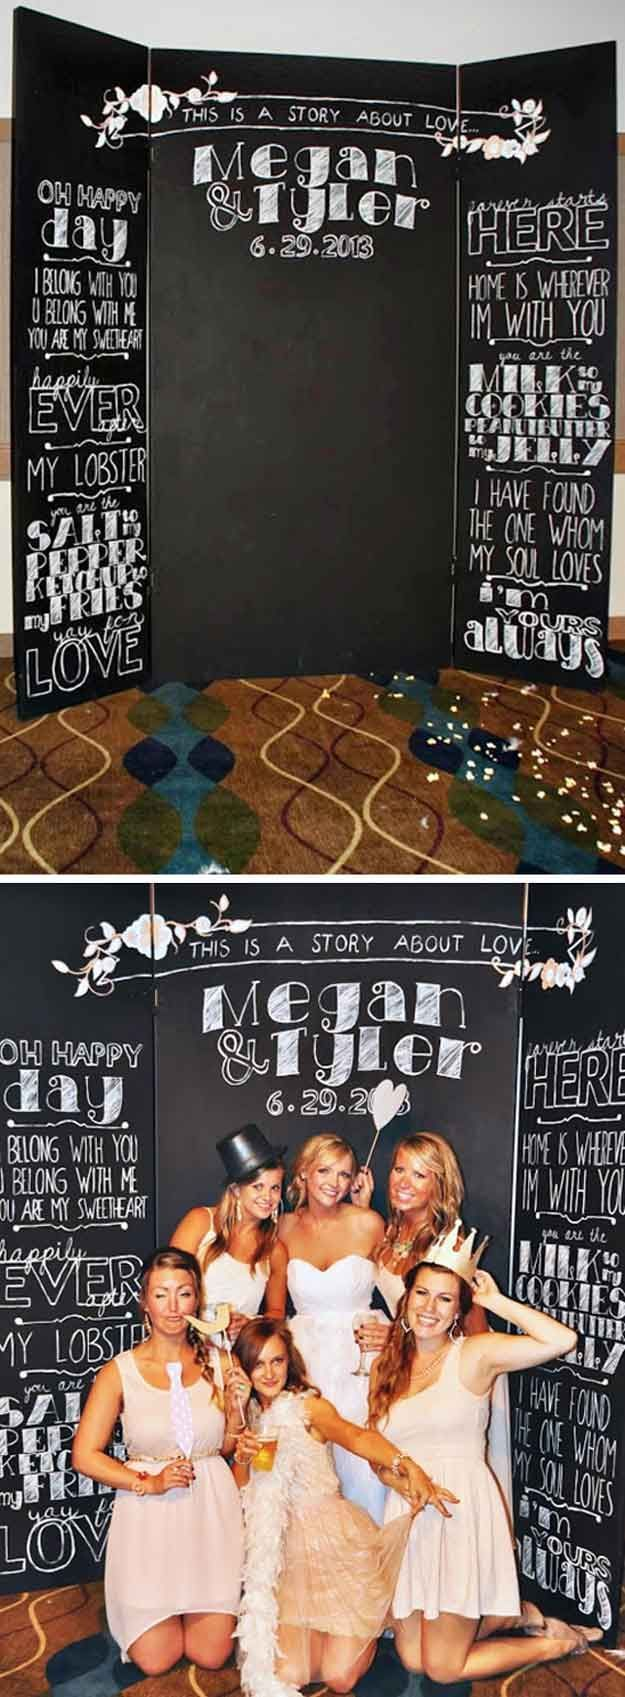 How to Make a Wedding Photo Booth | Invitation Photo Booth by DIY Ready at diyready.com/...